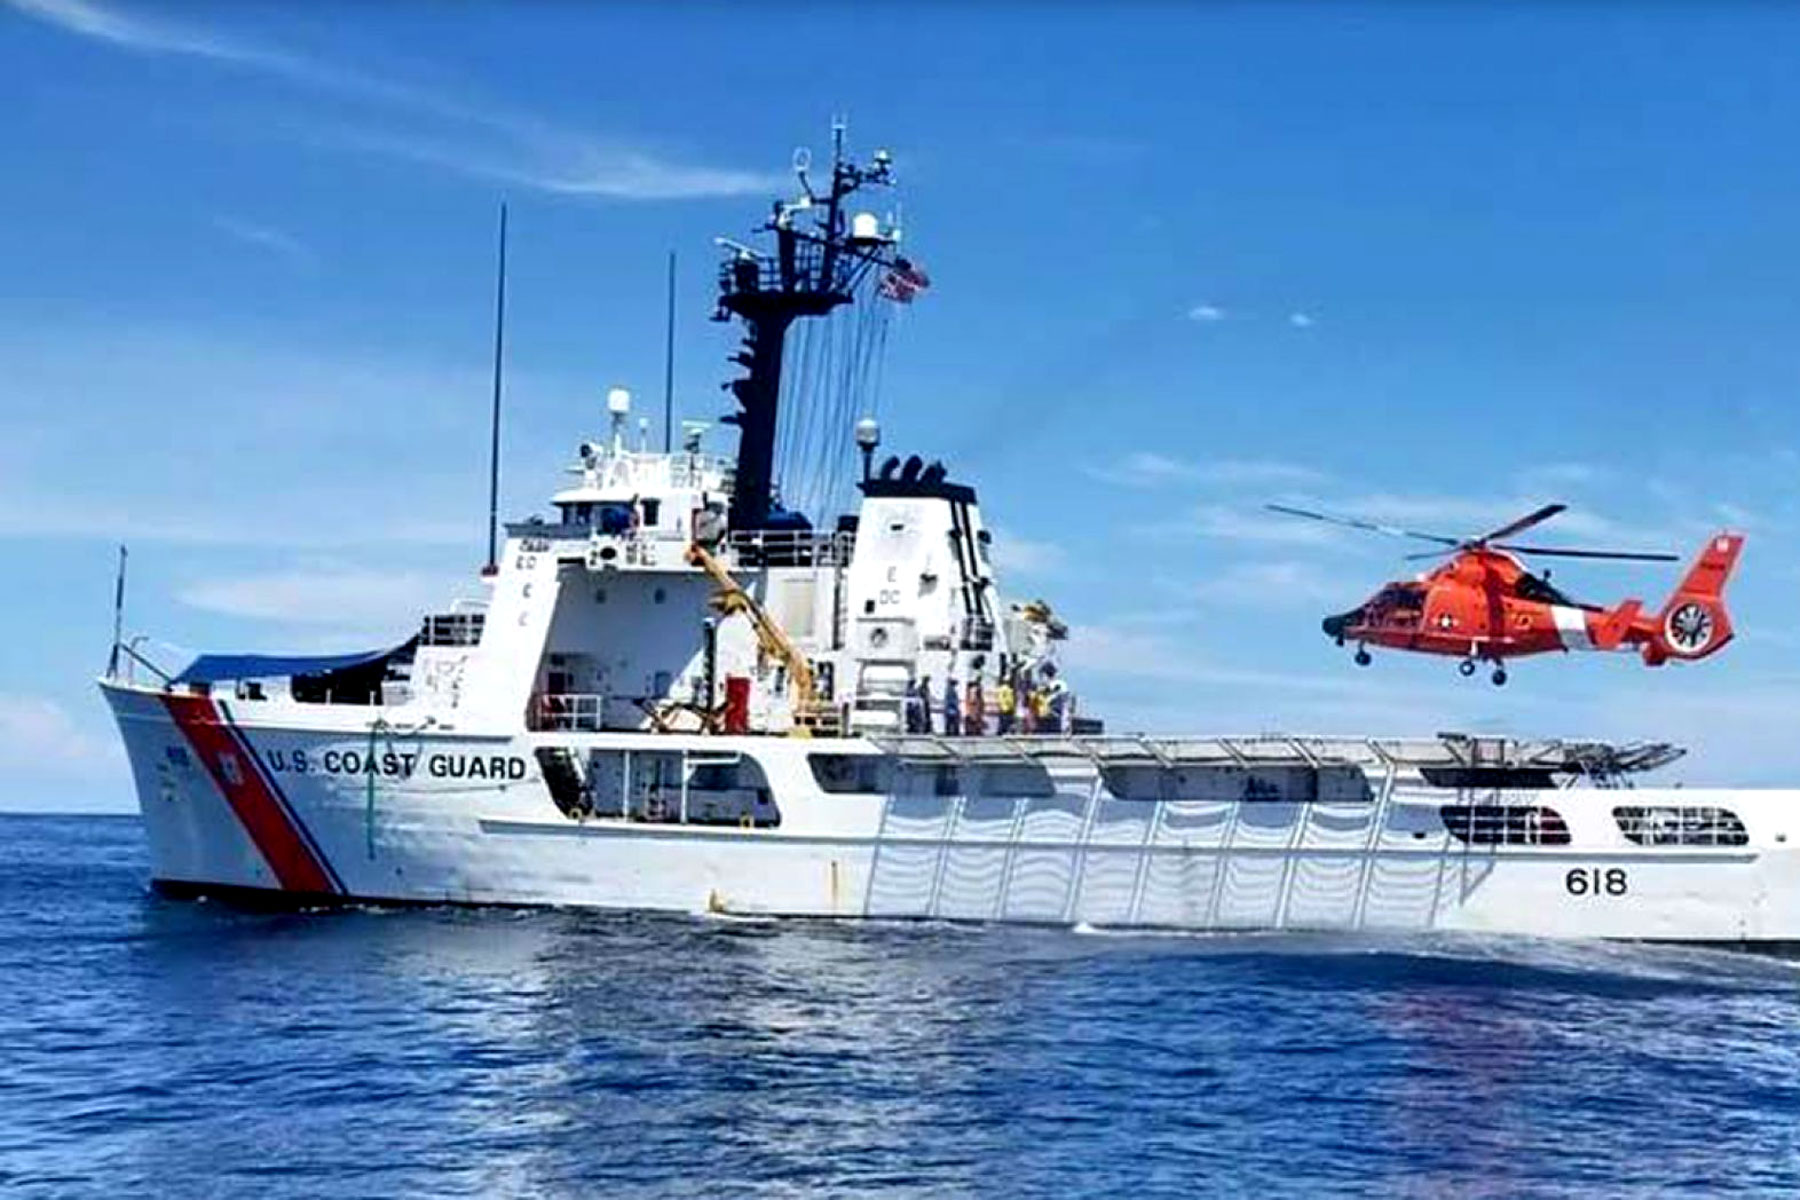 87m Worth Of Cocaine Seized By 52 Year Old Coast Guard